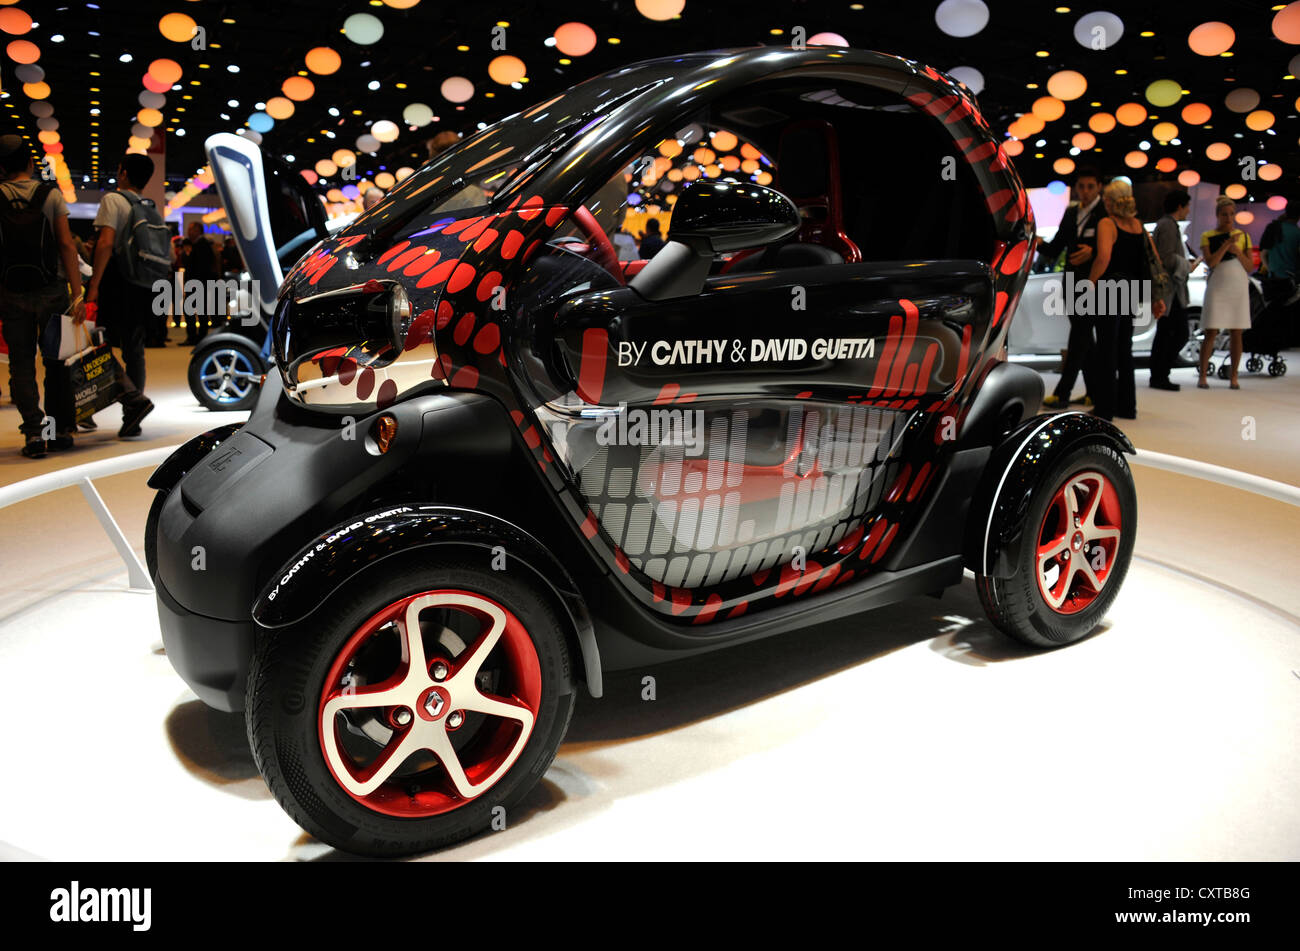 Renault Twizy By Cathy And David Guetta Electric Car Zero